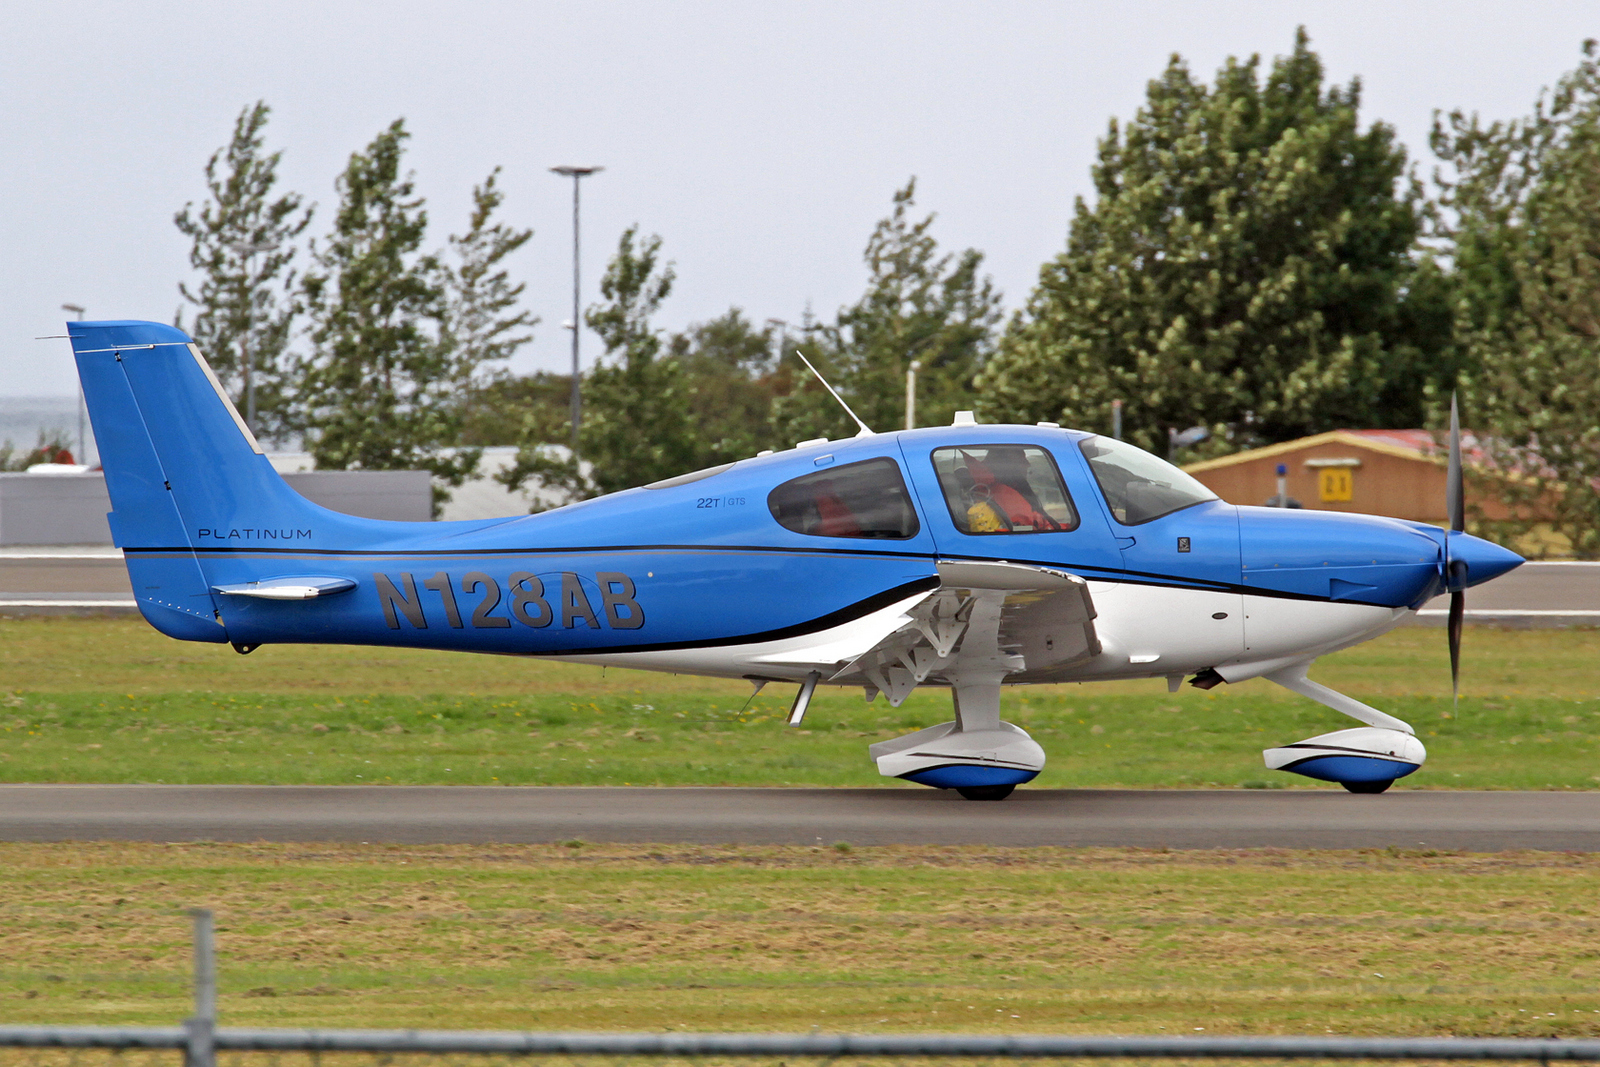 Aircraft Guaranty Corp Trustee Cirrus SR-22T N128AB, RKV, 10. August 2020